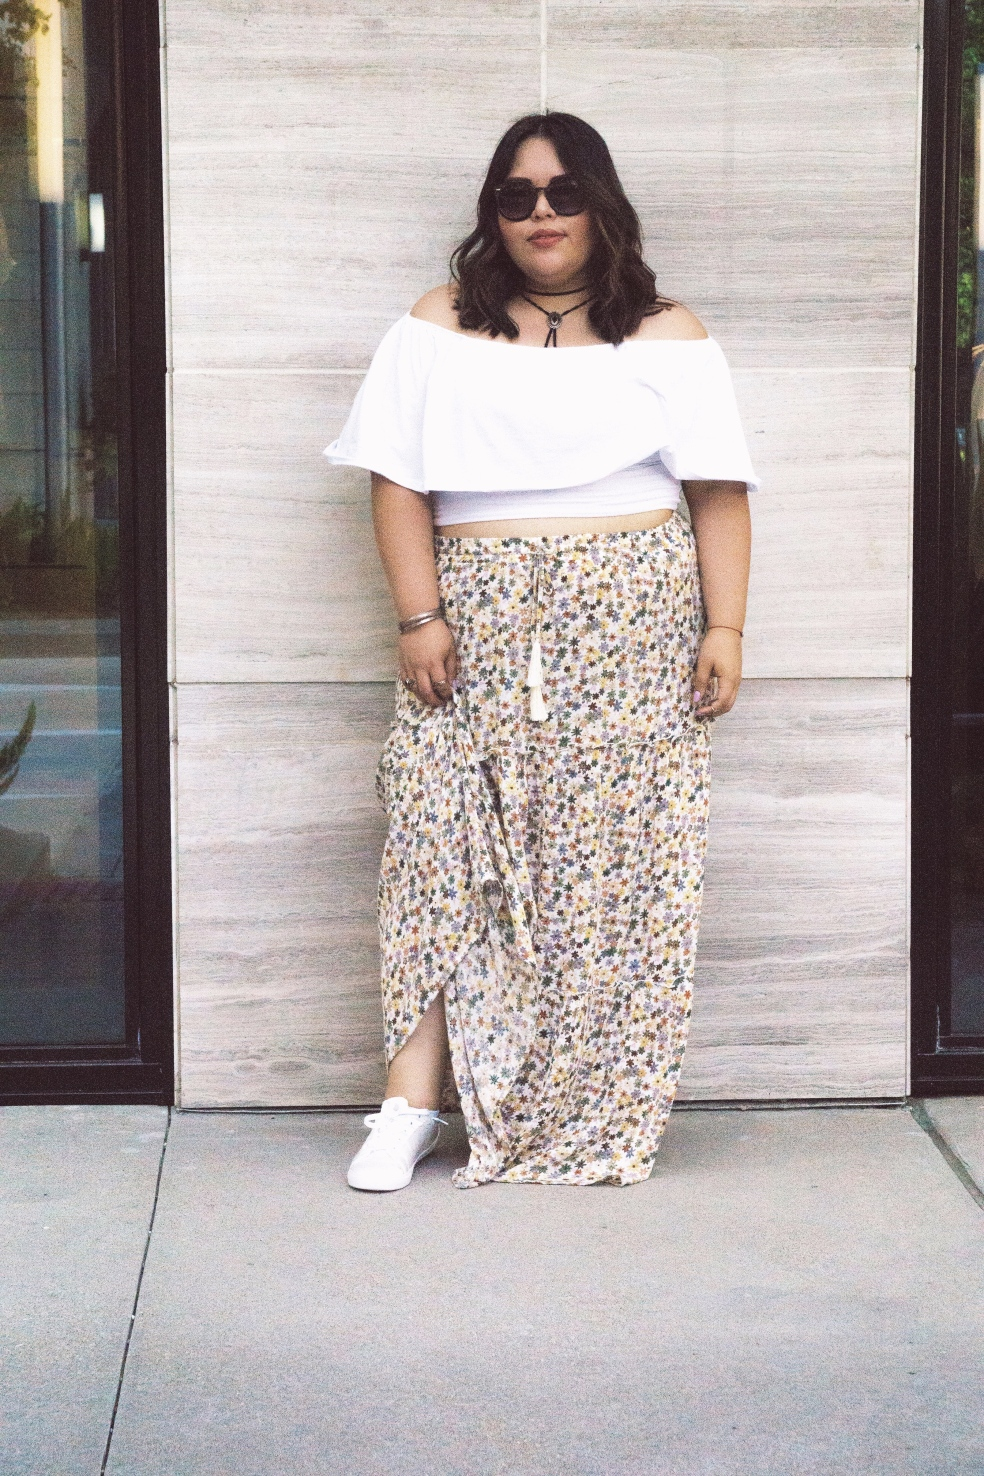 Spring Plus Size Outfit feat. Rebdolls Ruffled Crop Top and Mossimo Floral Maxi Skirt